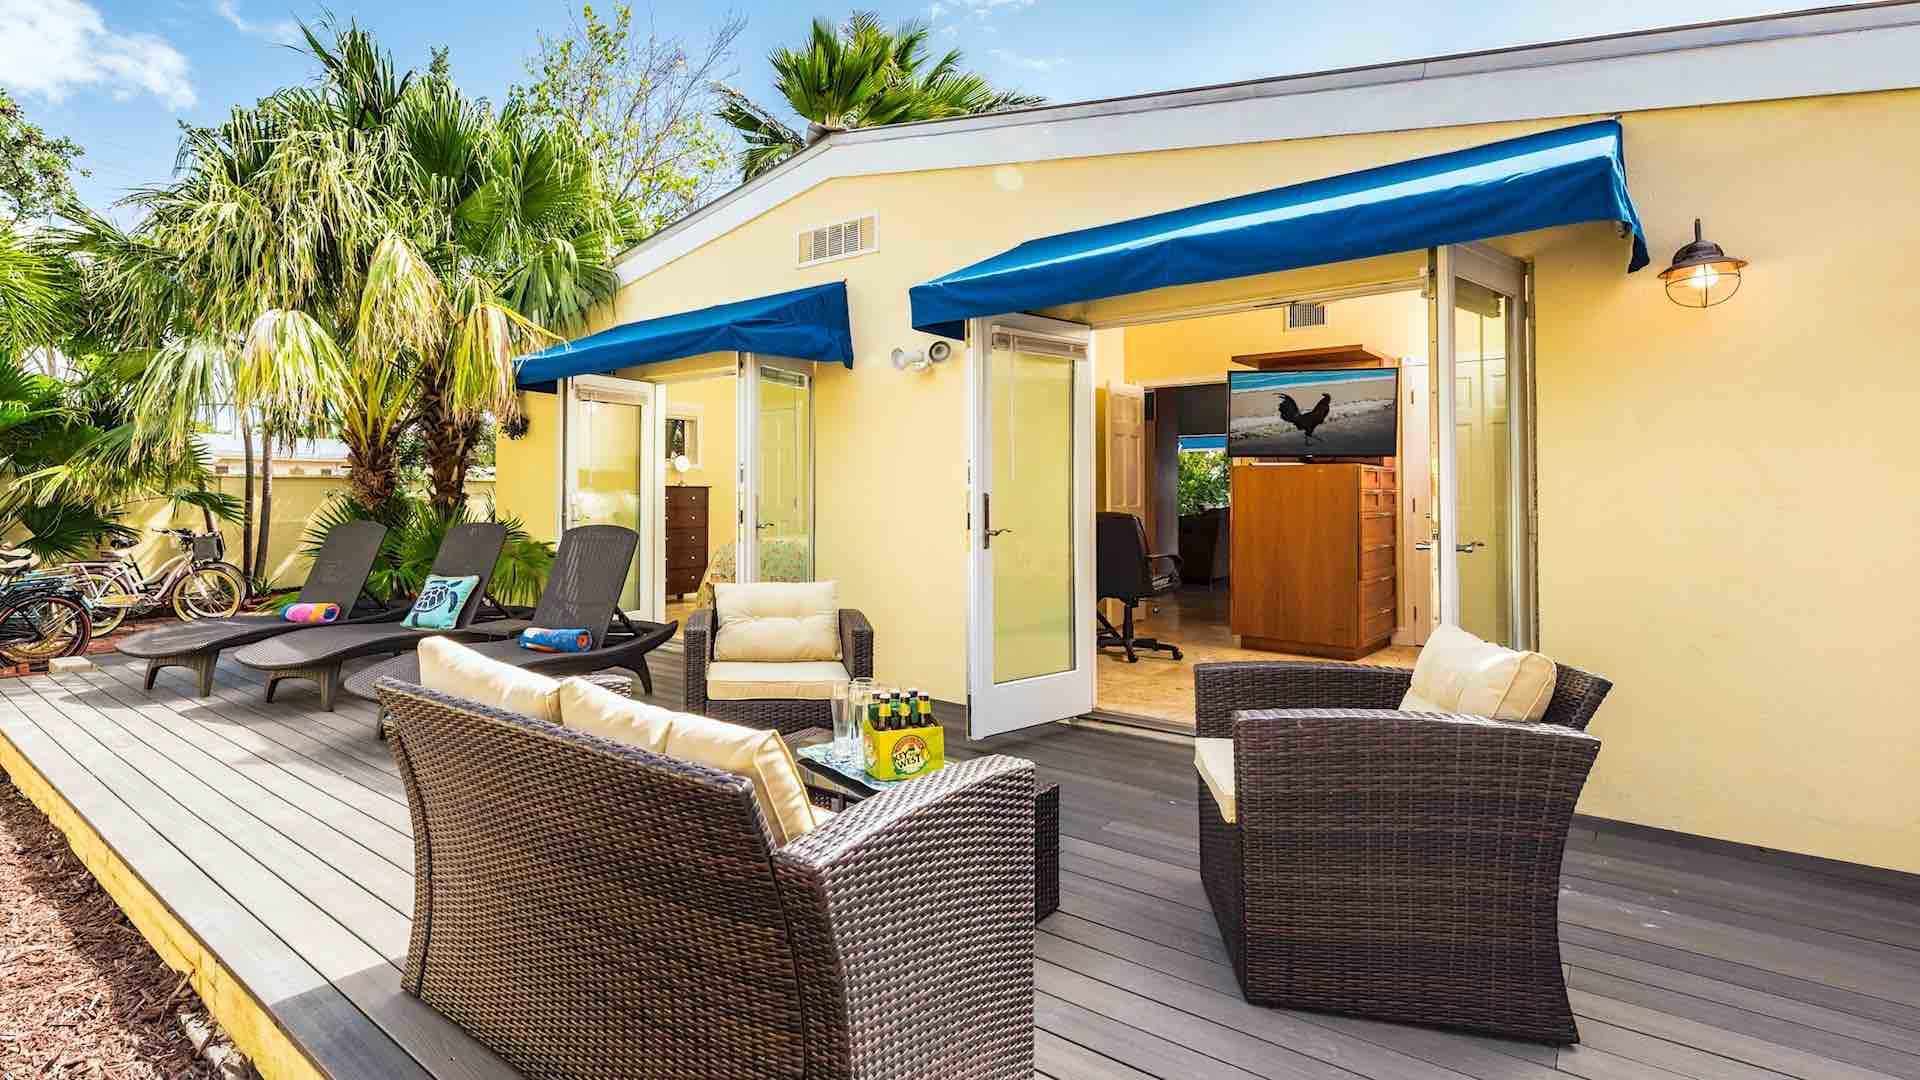 The sun deck is surrounded by a six foot high wall that provides supreme privacy...